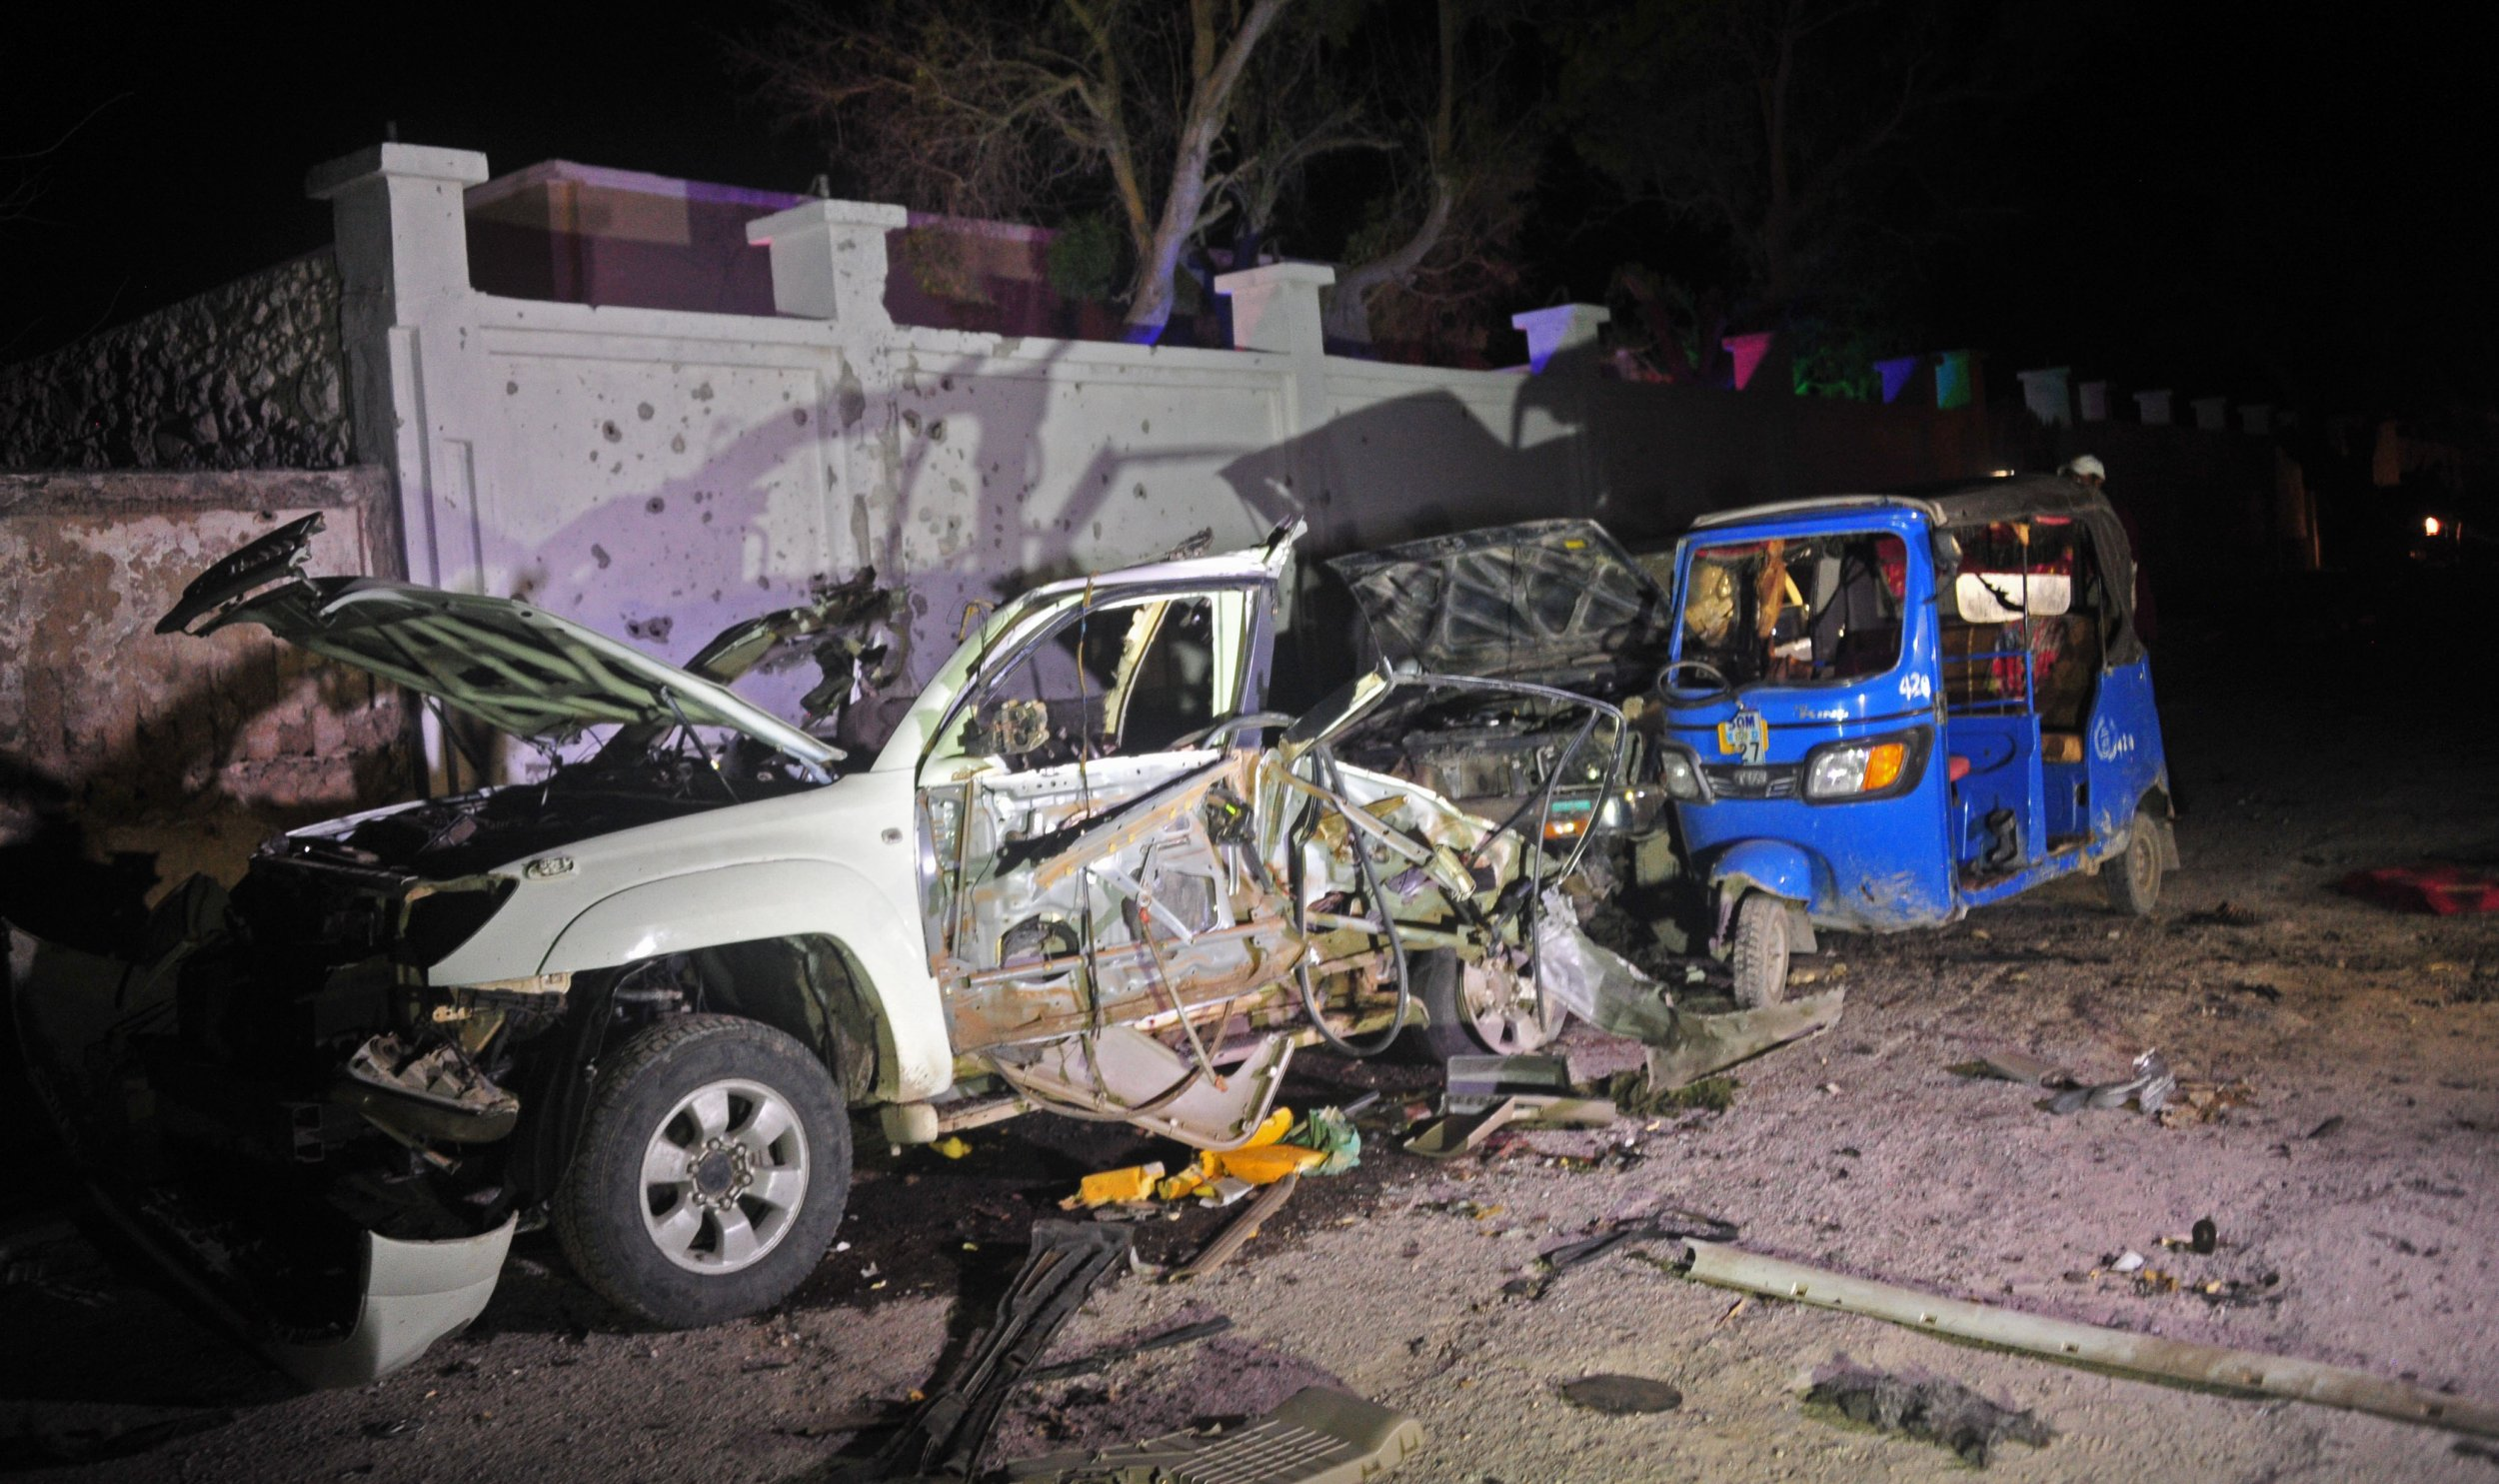 Scene of Al-Shabab attack on beach in Mogadishu